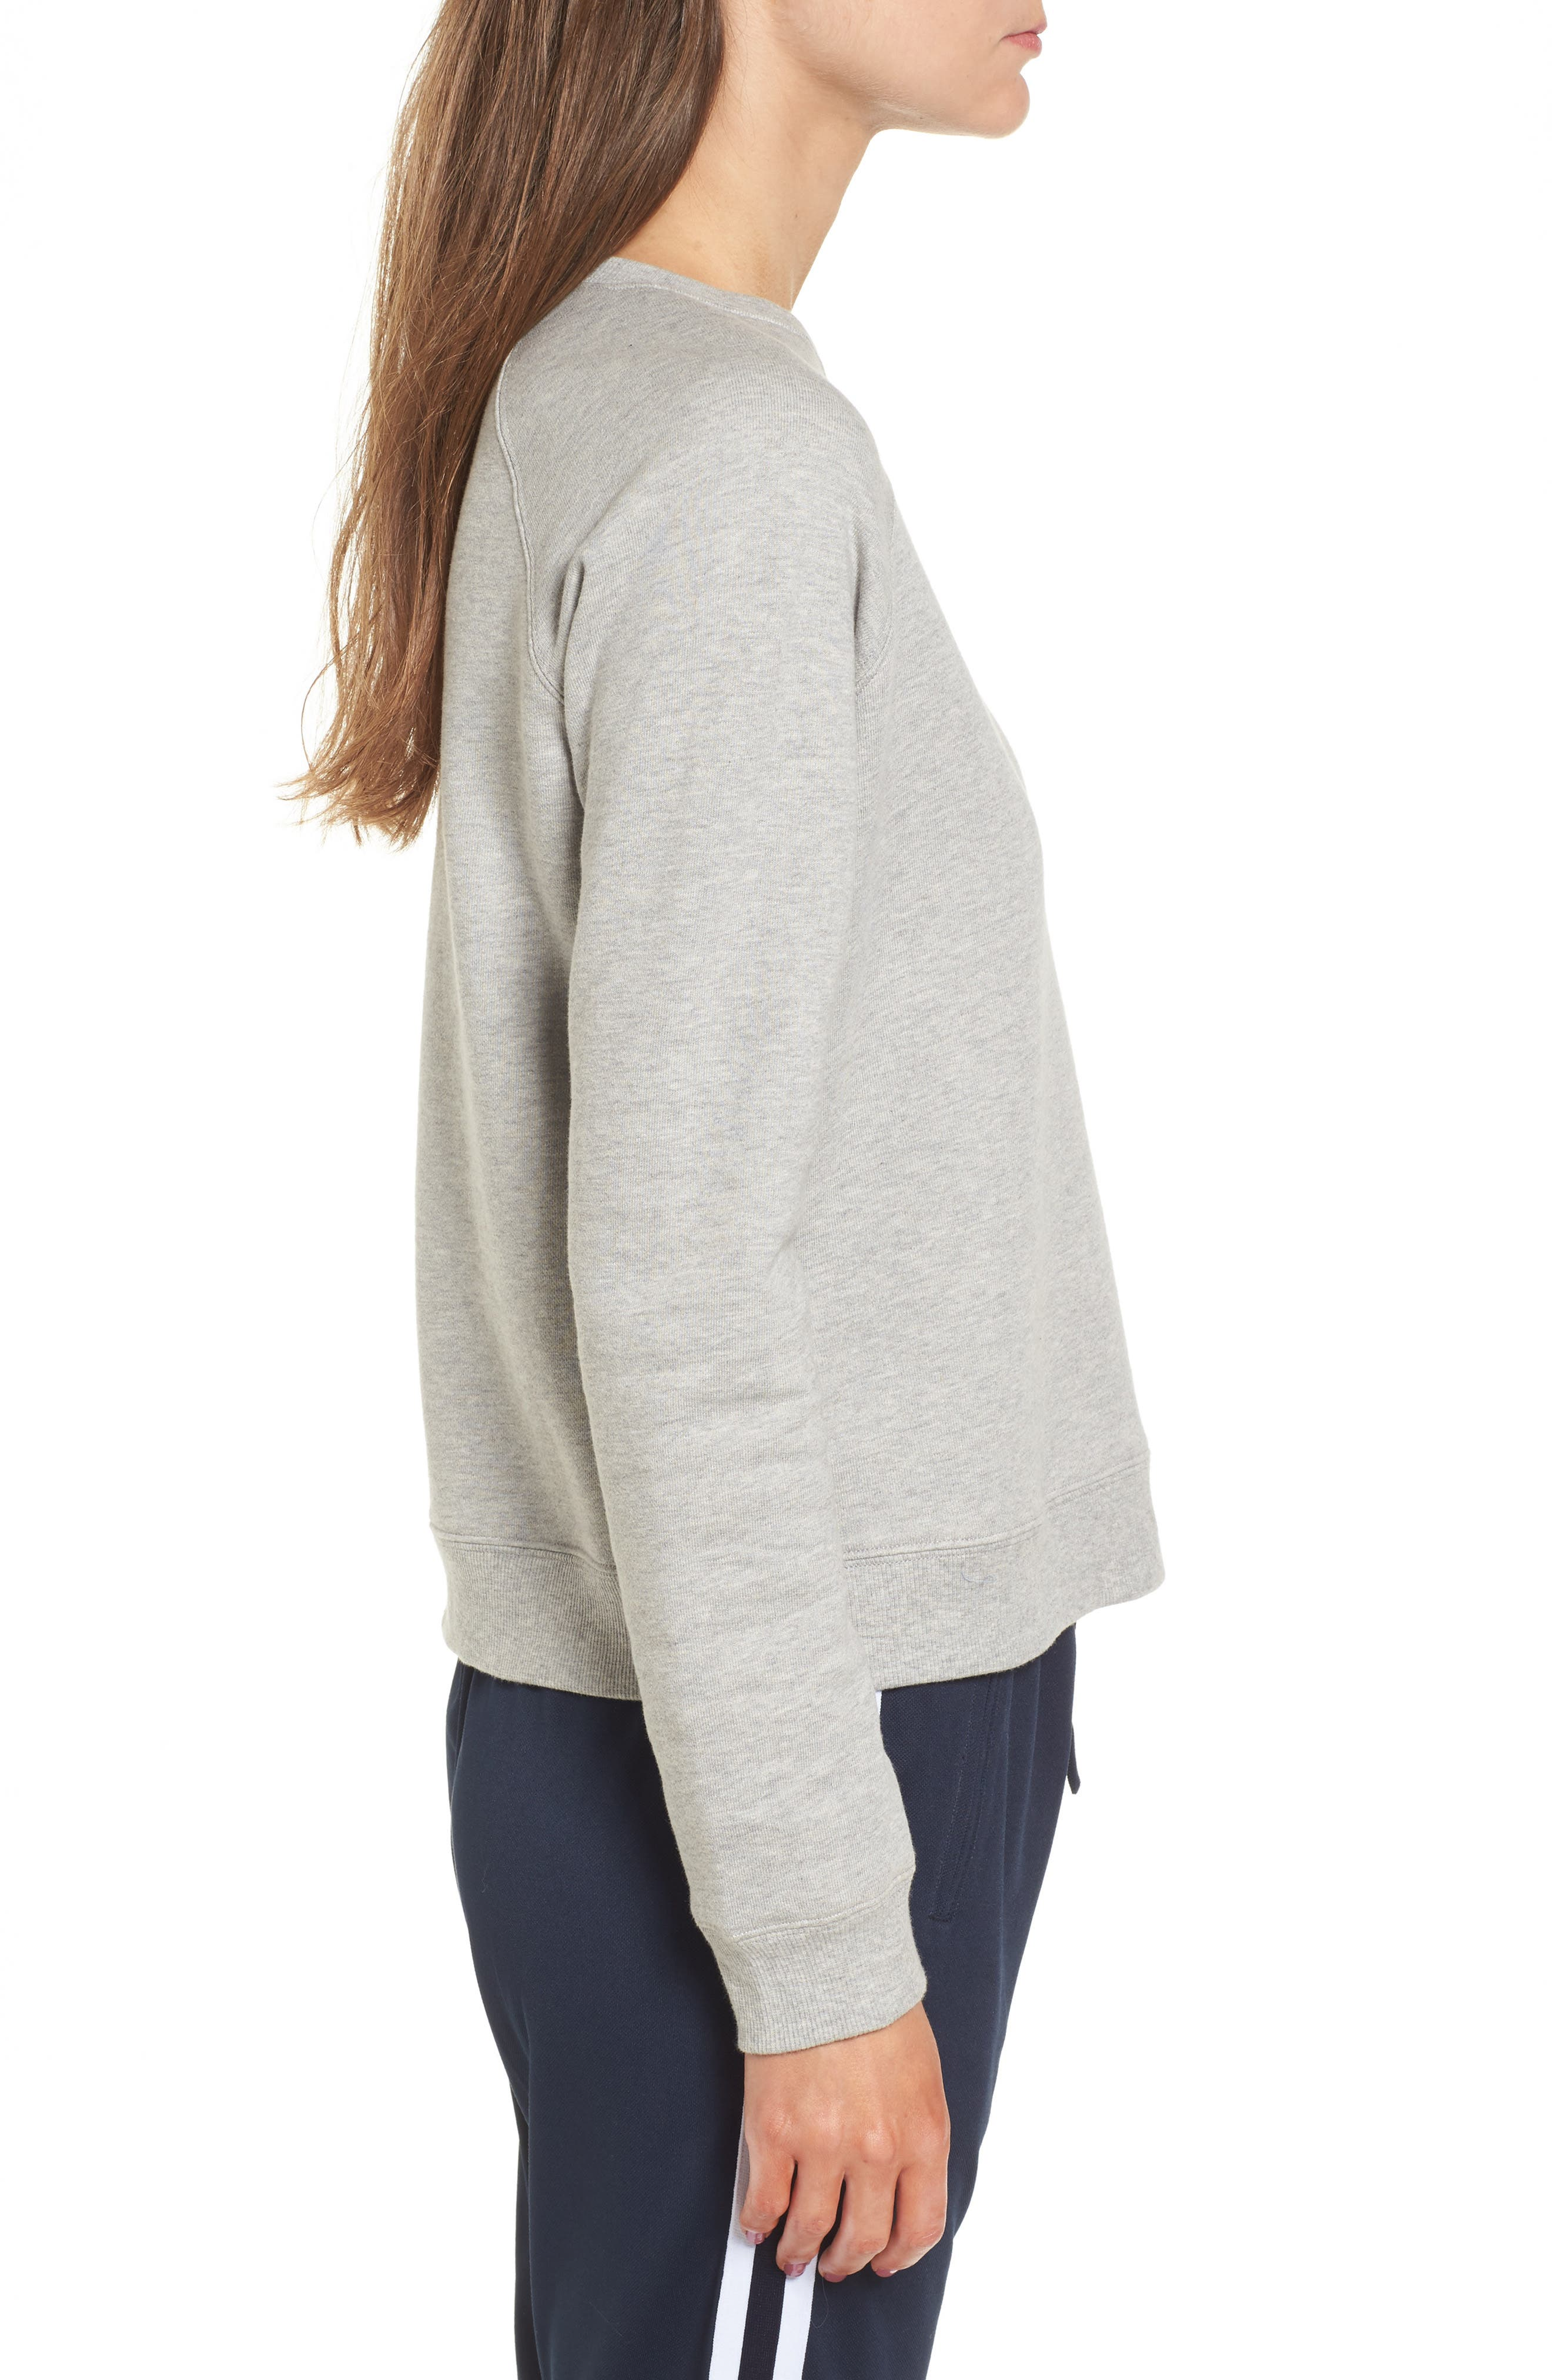 Out of Office Sweatshirt,                             Alternate thumbnail 3, color,                             Heather Grey/ Red